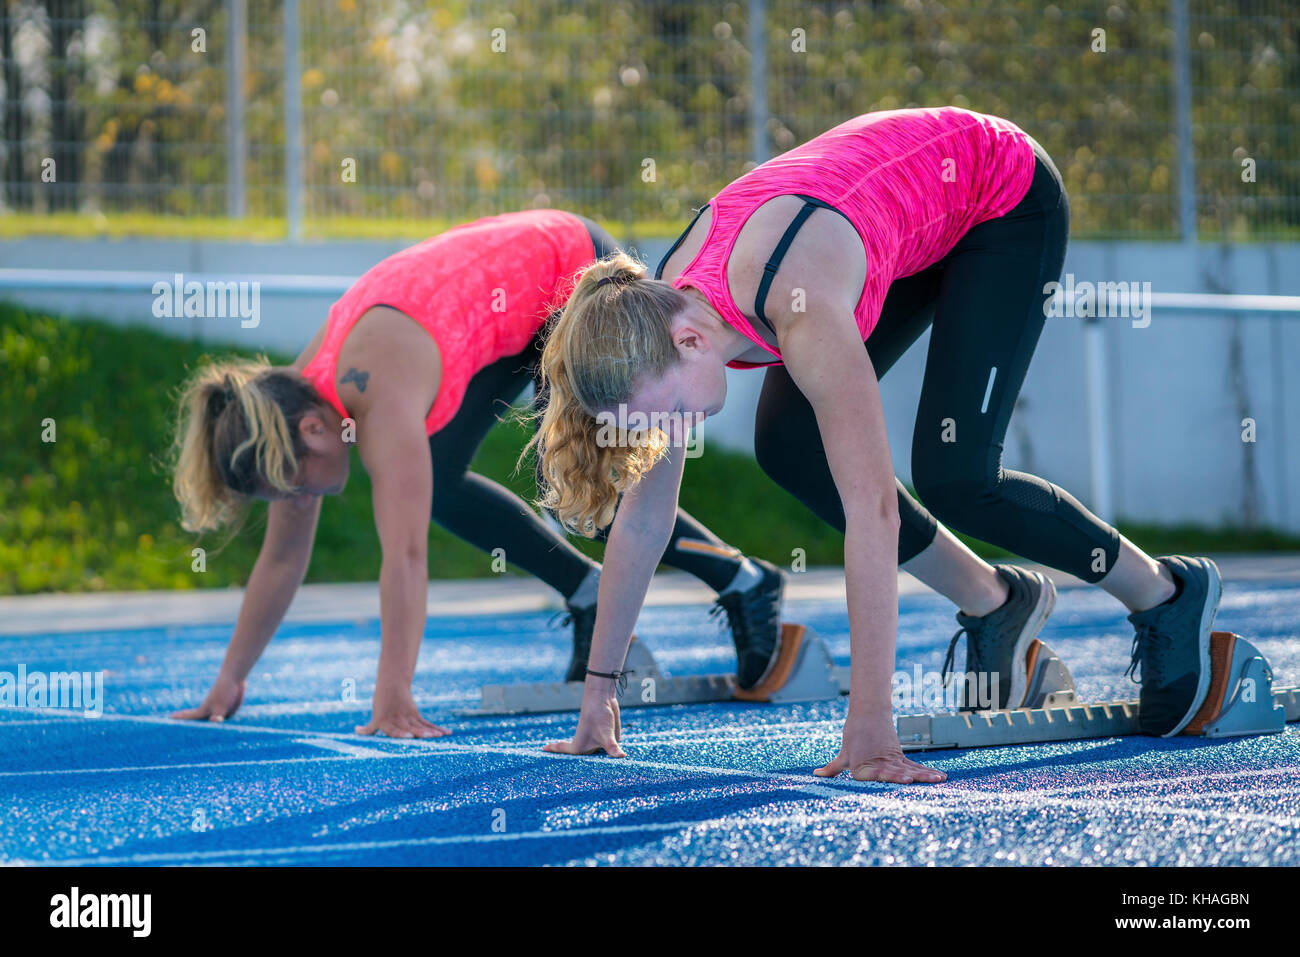 Women, athletics, sprint start - Stock Image